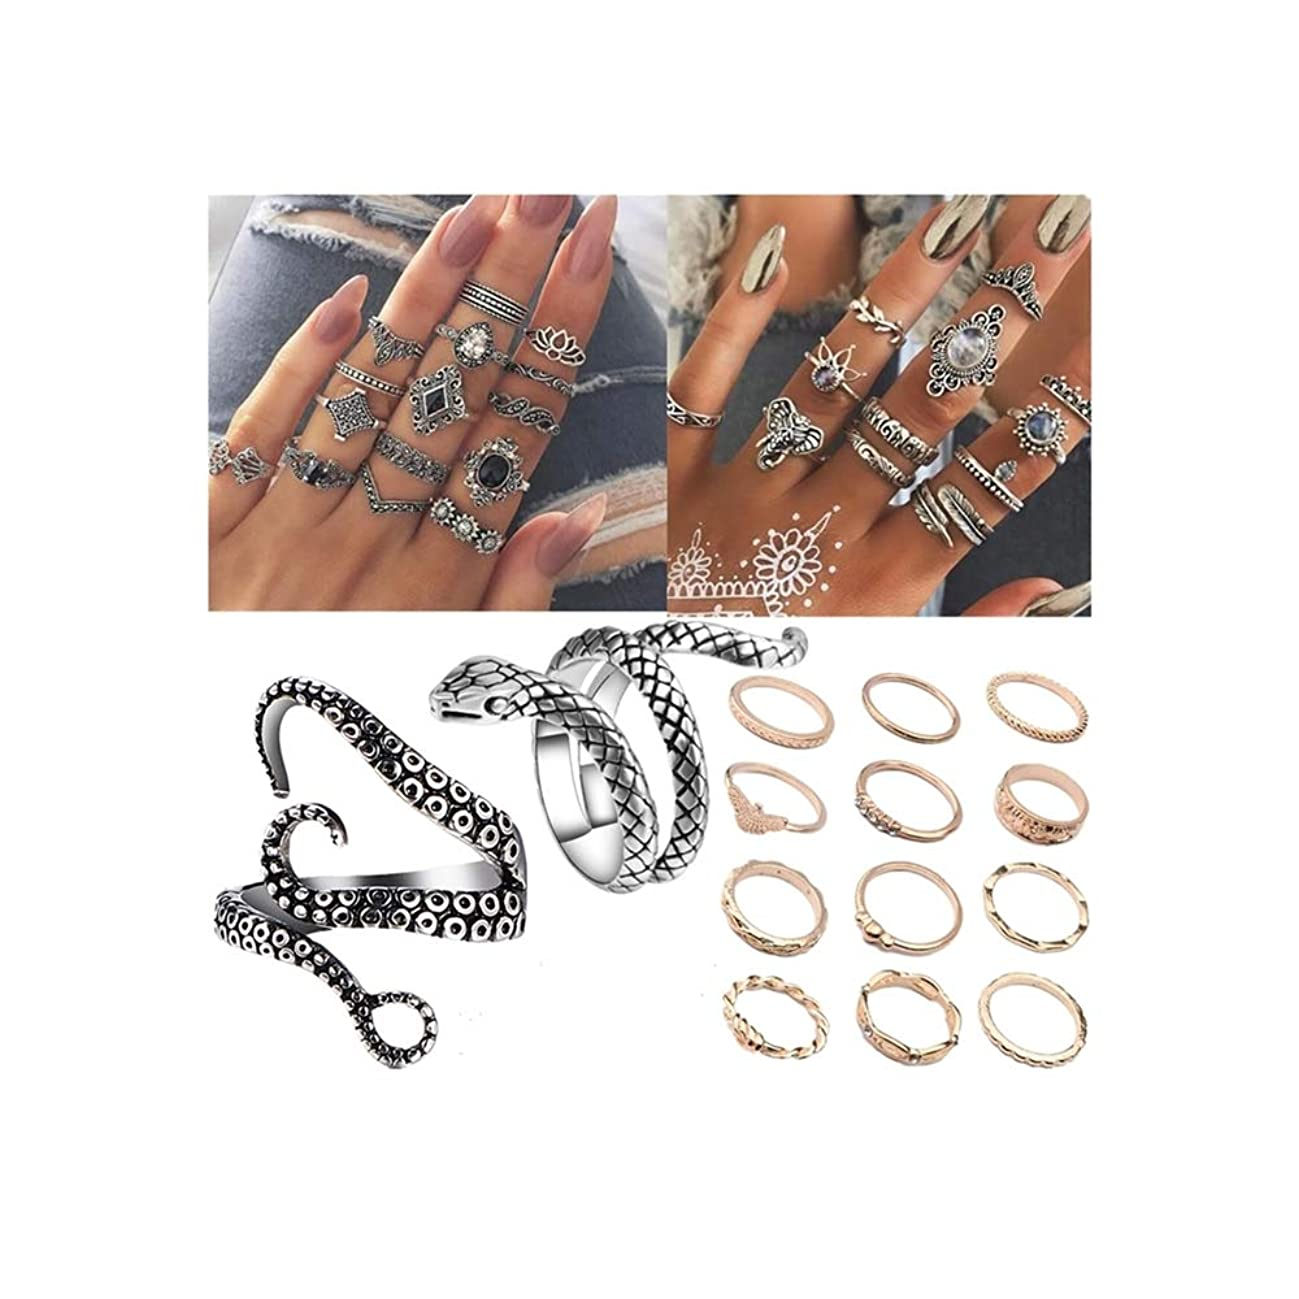 NNIOV 41Pc Fashion Boho Knuckle Rings Set for Women Girls Men, Vintage Retro Crystal Bohemian Midi Rings, Joint Nail Band Cuff Toe Statement Finger Rings, Snake Octopus Elephant Feather (41 Pcs a set)